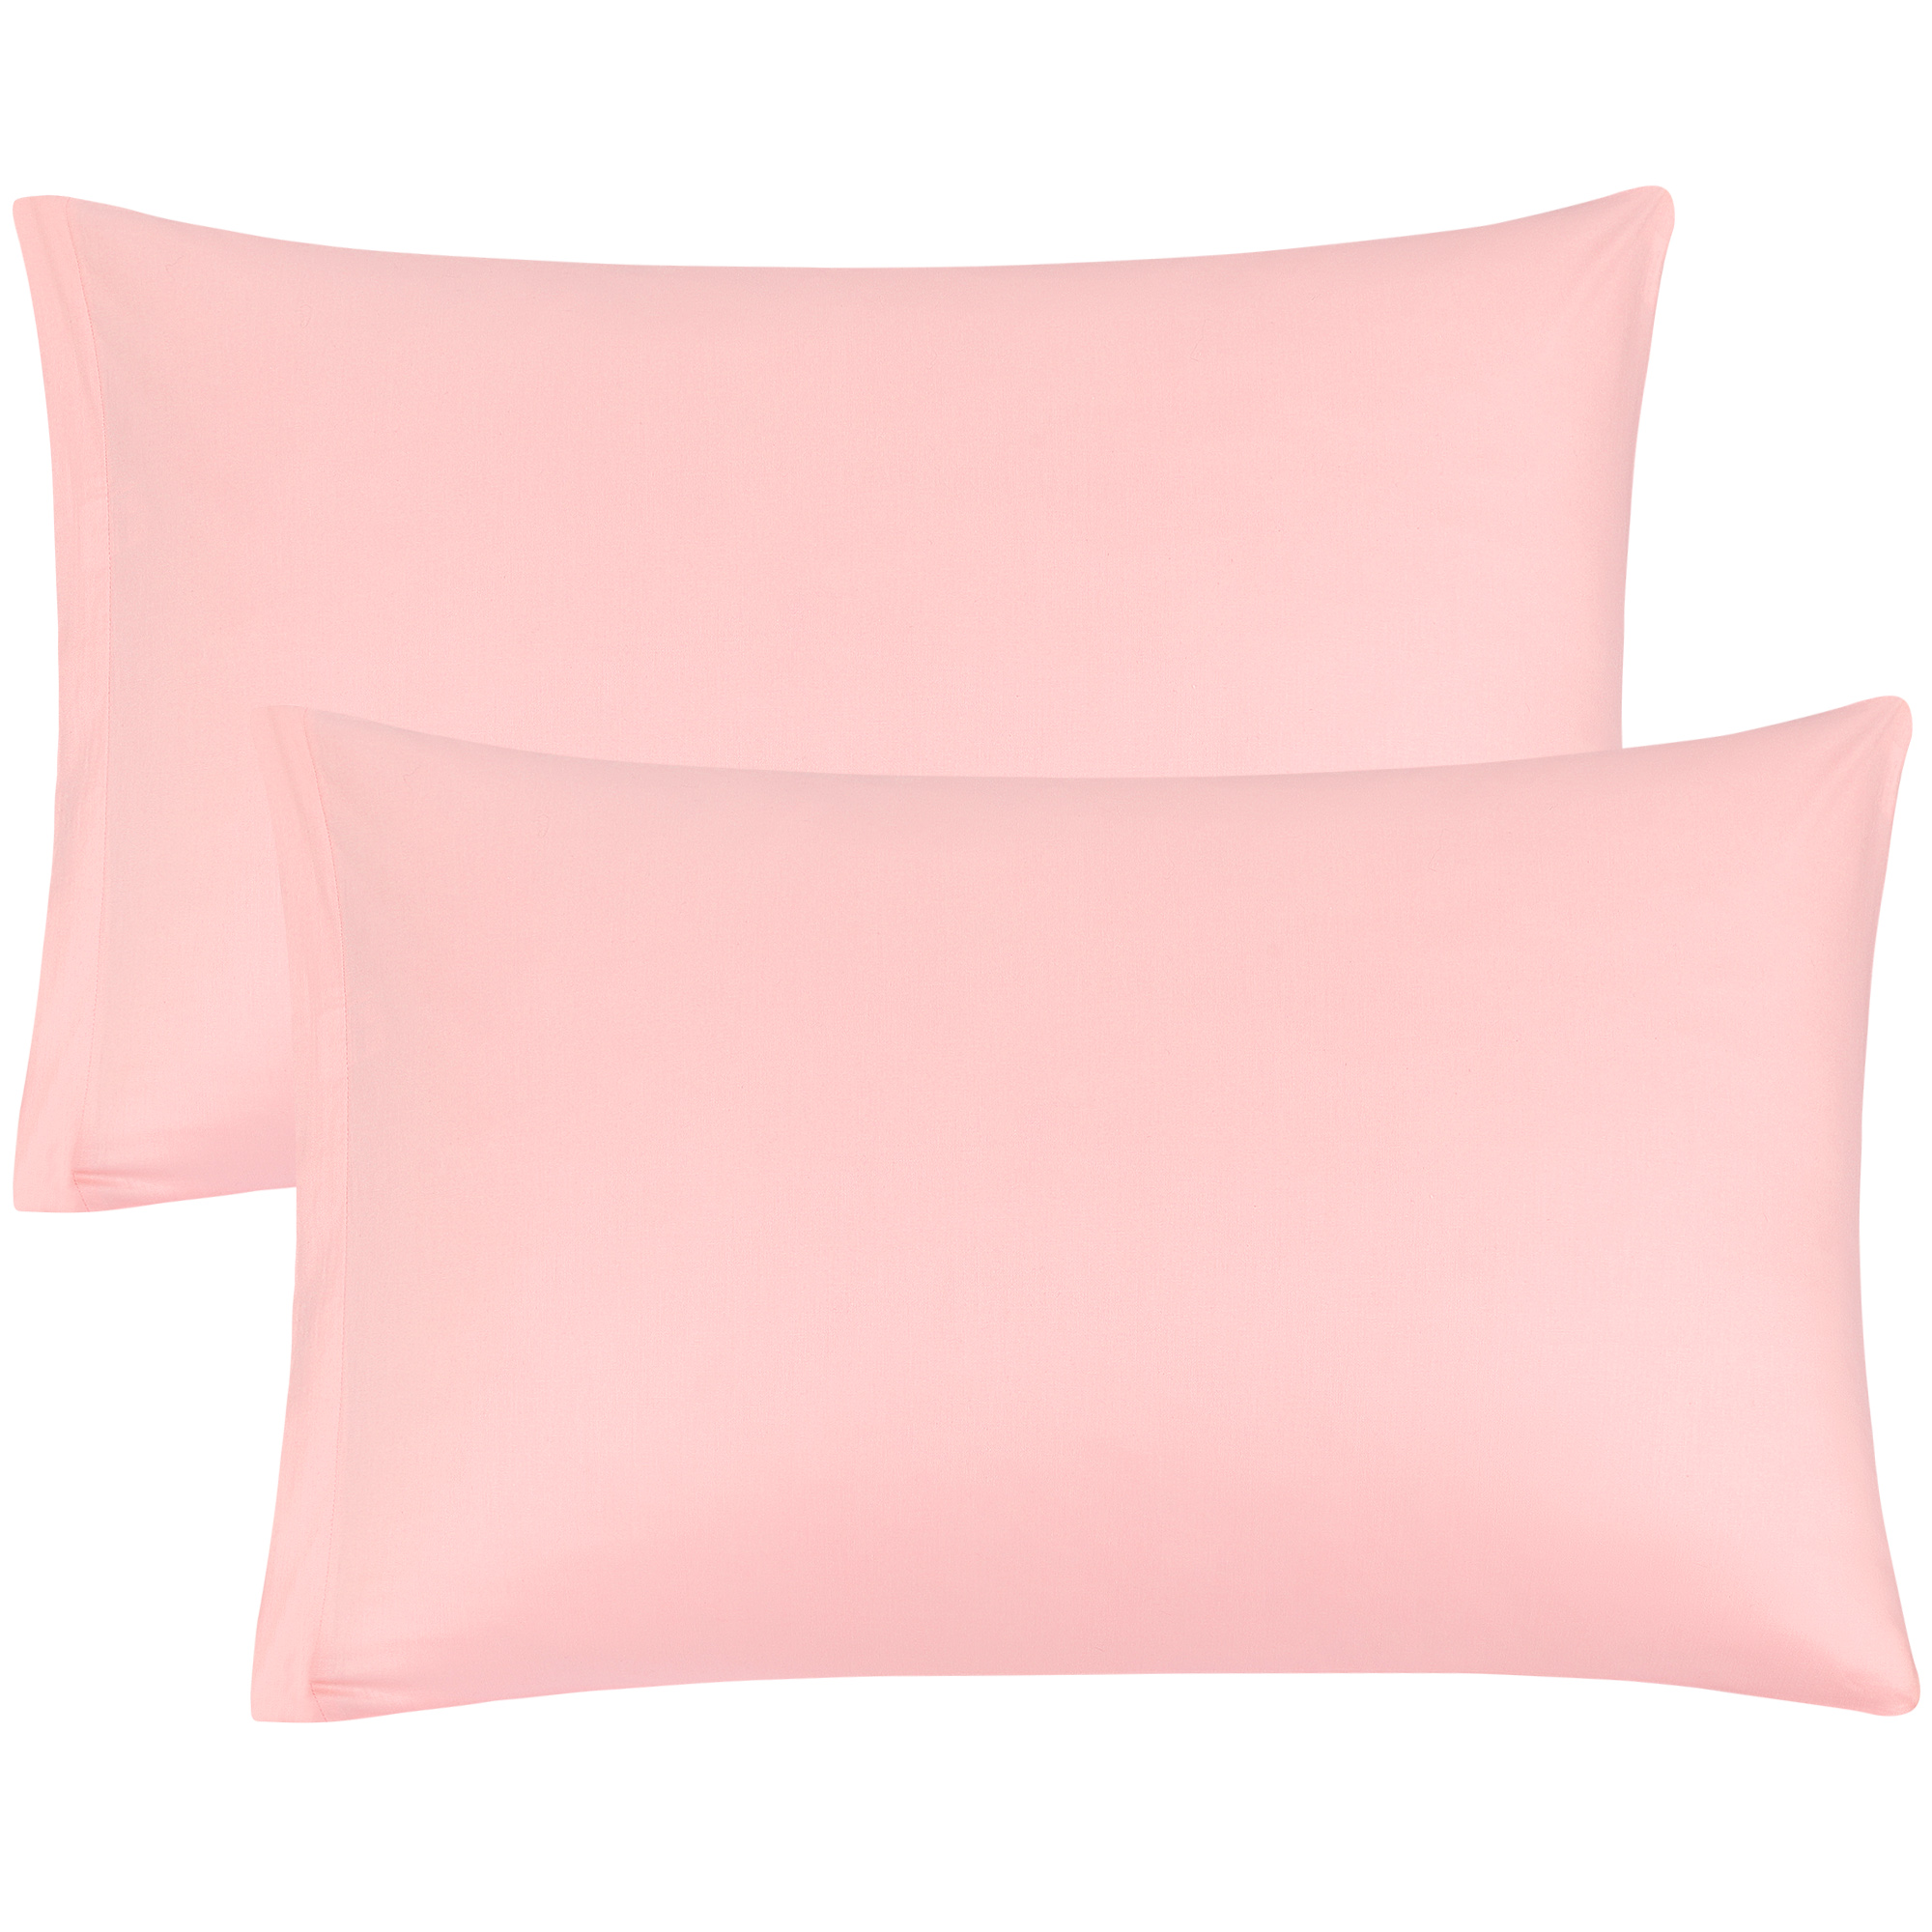 Zippered Pillowcases Covers Egyptian Cotton 2-Pack (20 x 36 Inch, Light Pink)